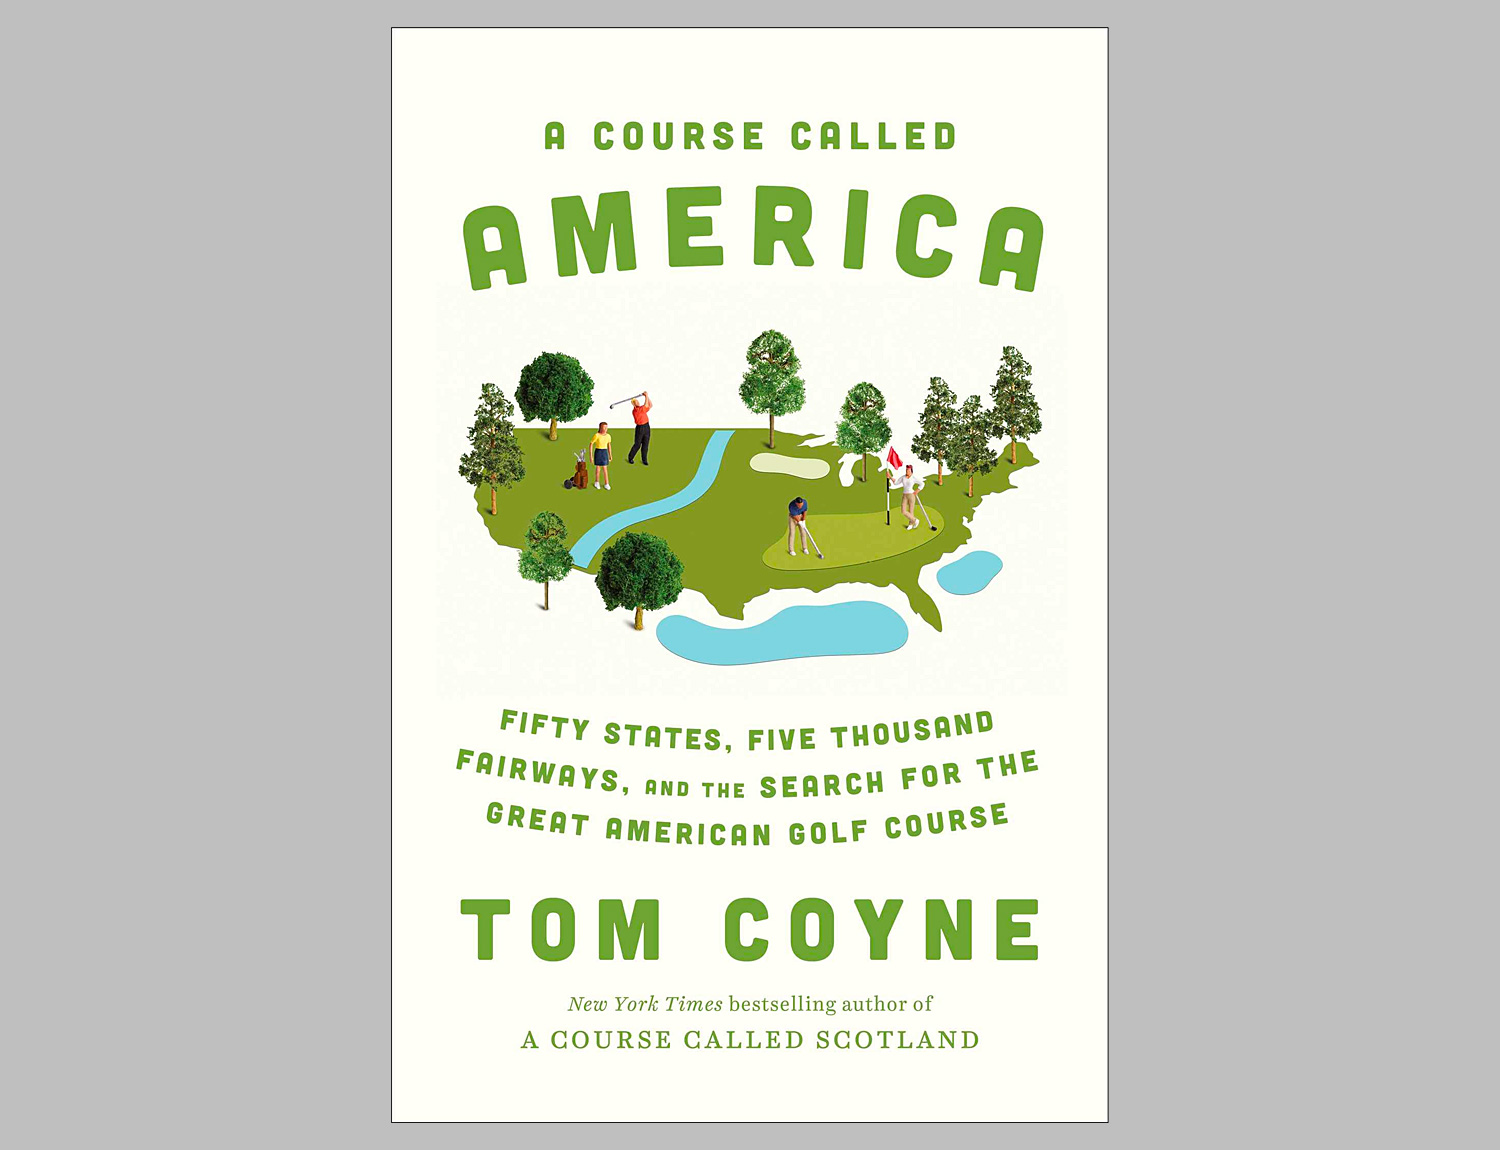 A Course Called America: Fifty States, Five Thousand Fairways, and the Search for the Great American Golf Course at werd.com